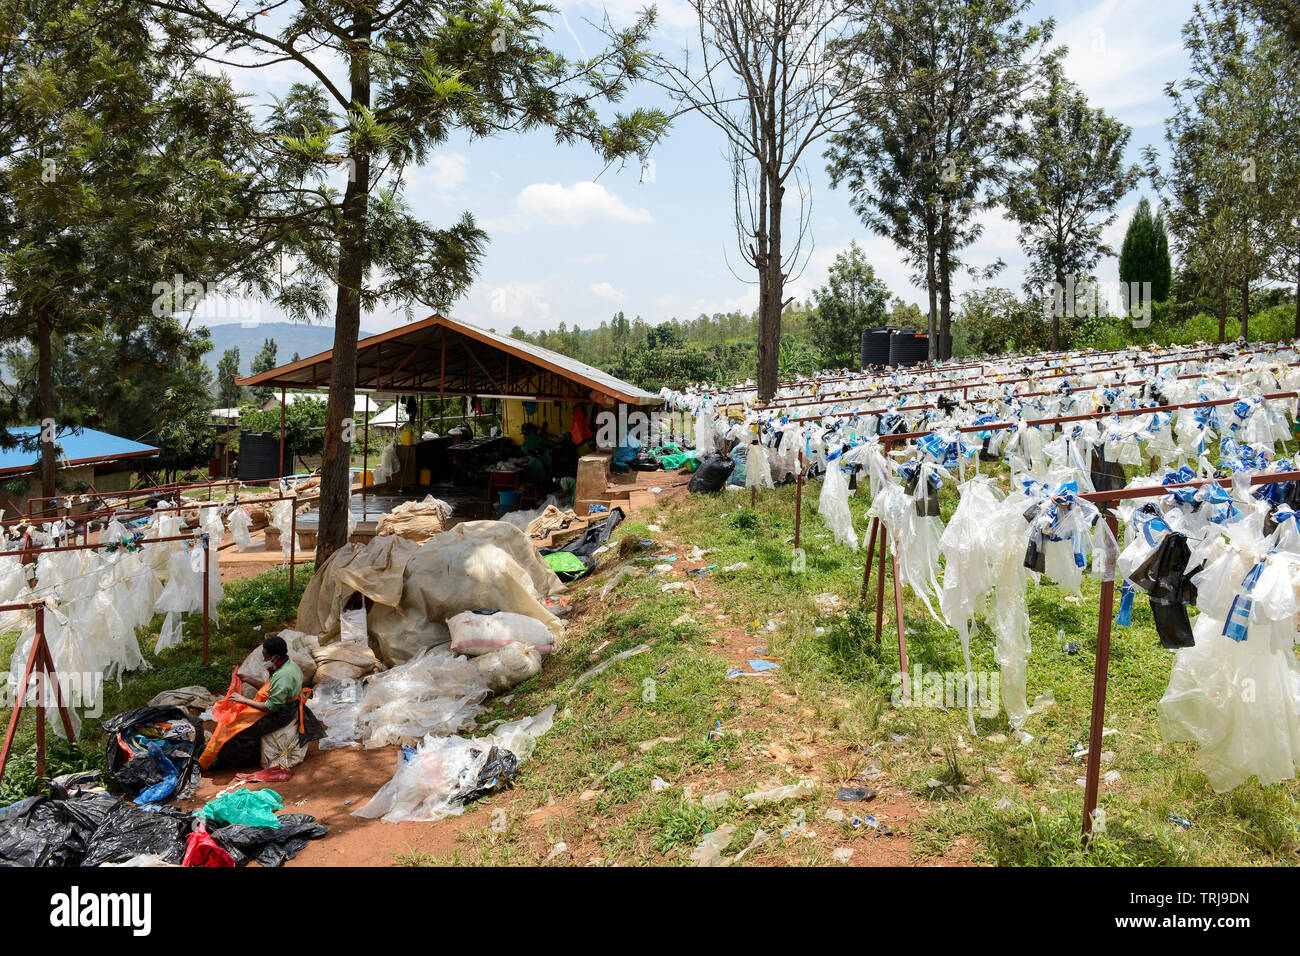 RWANDA, Kigali, plastic recycling at company ecoplastics, worker clean and dry plastic foils before processing to granulate which is used for new plastic products , More images: www.visualindia.de Stock Photo